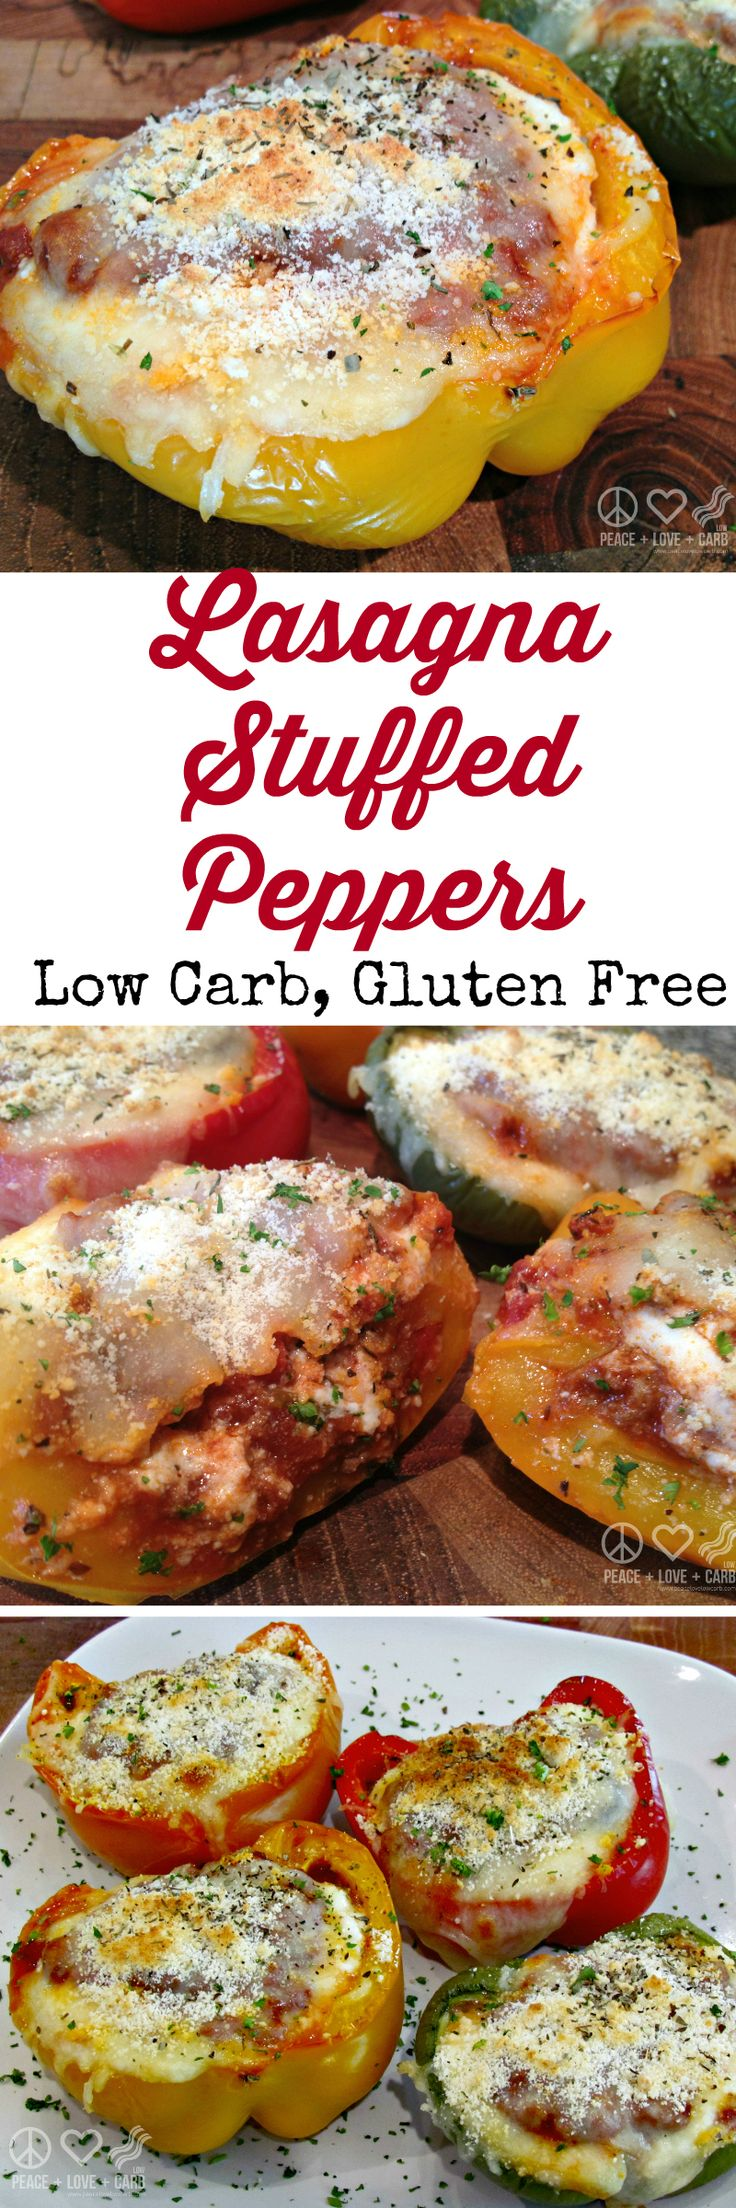 Lasagna Stuffed Peppers #lowcarb